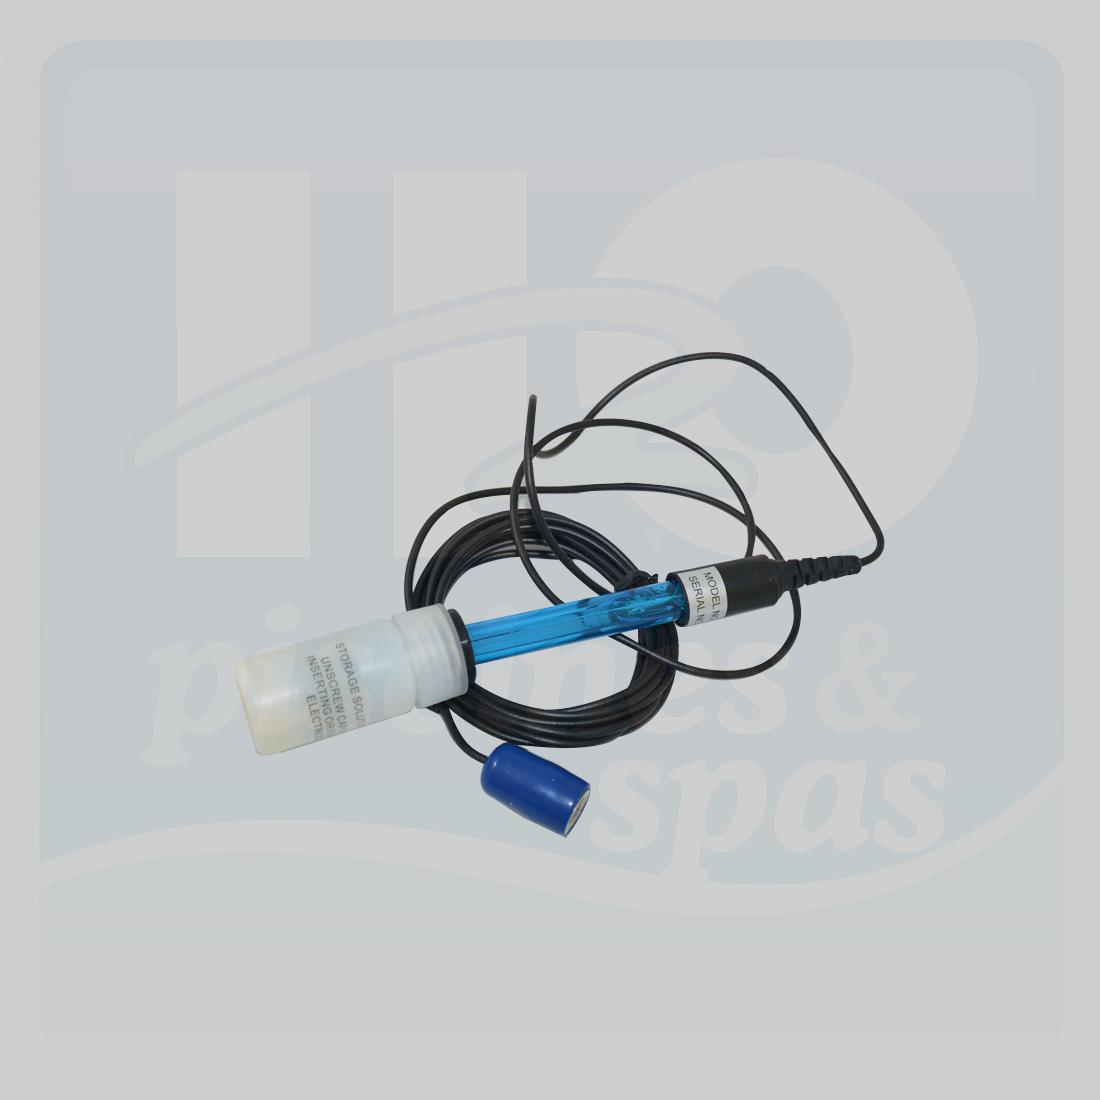 Sonde ph pour pompe doseuse pool technologie just regul for Pompe doseuse ph piscine